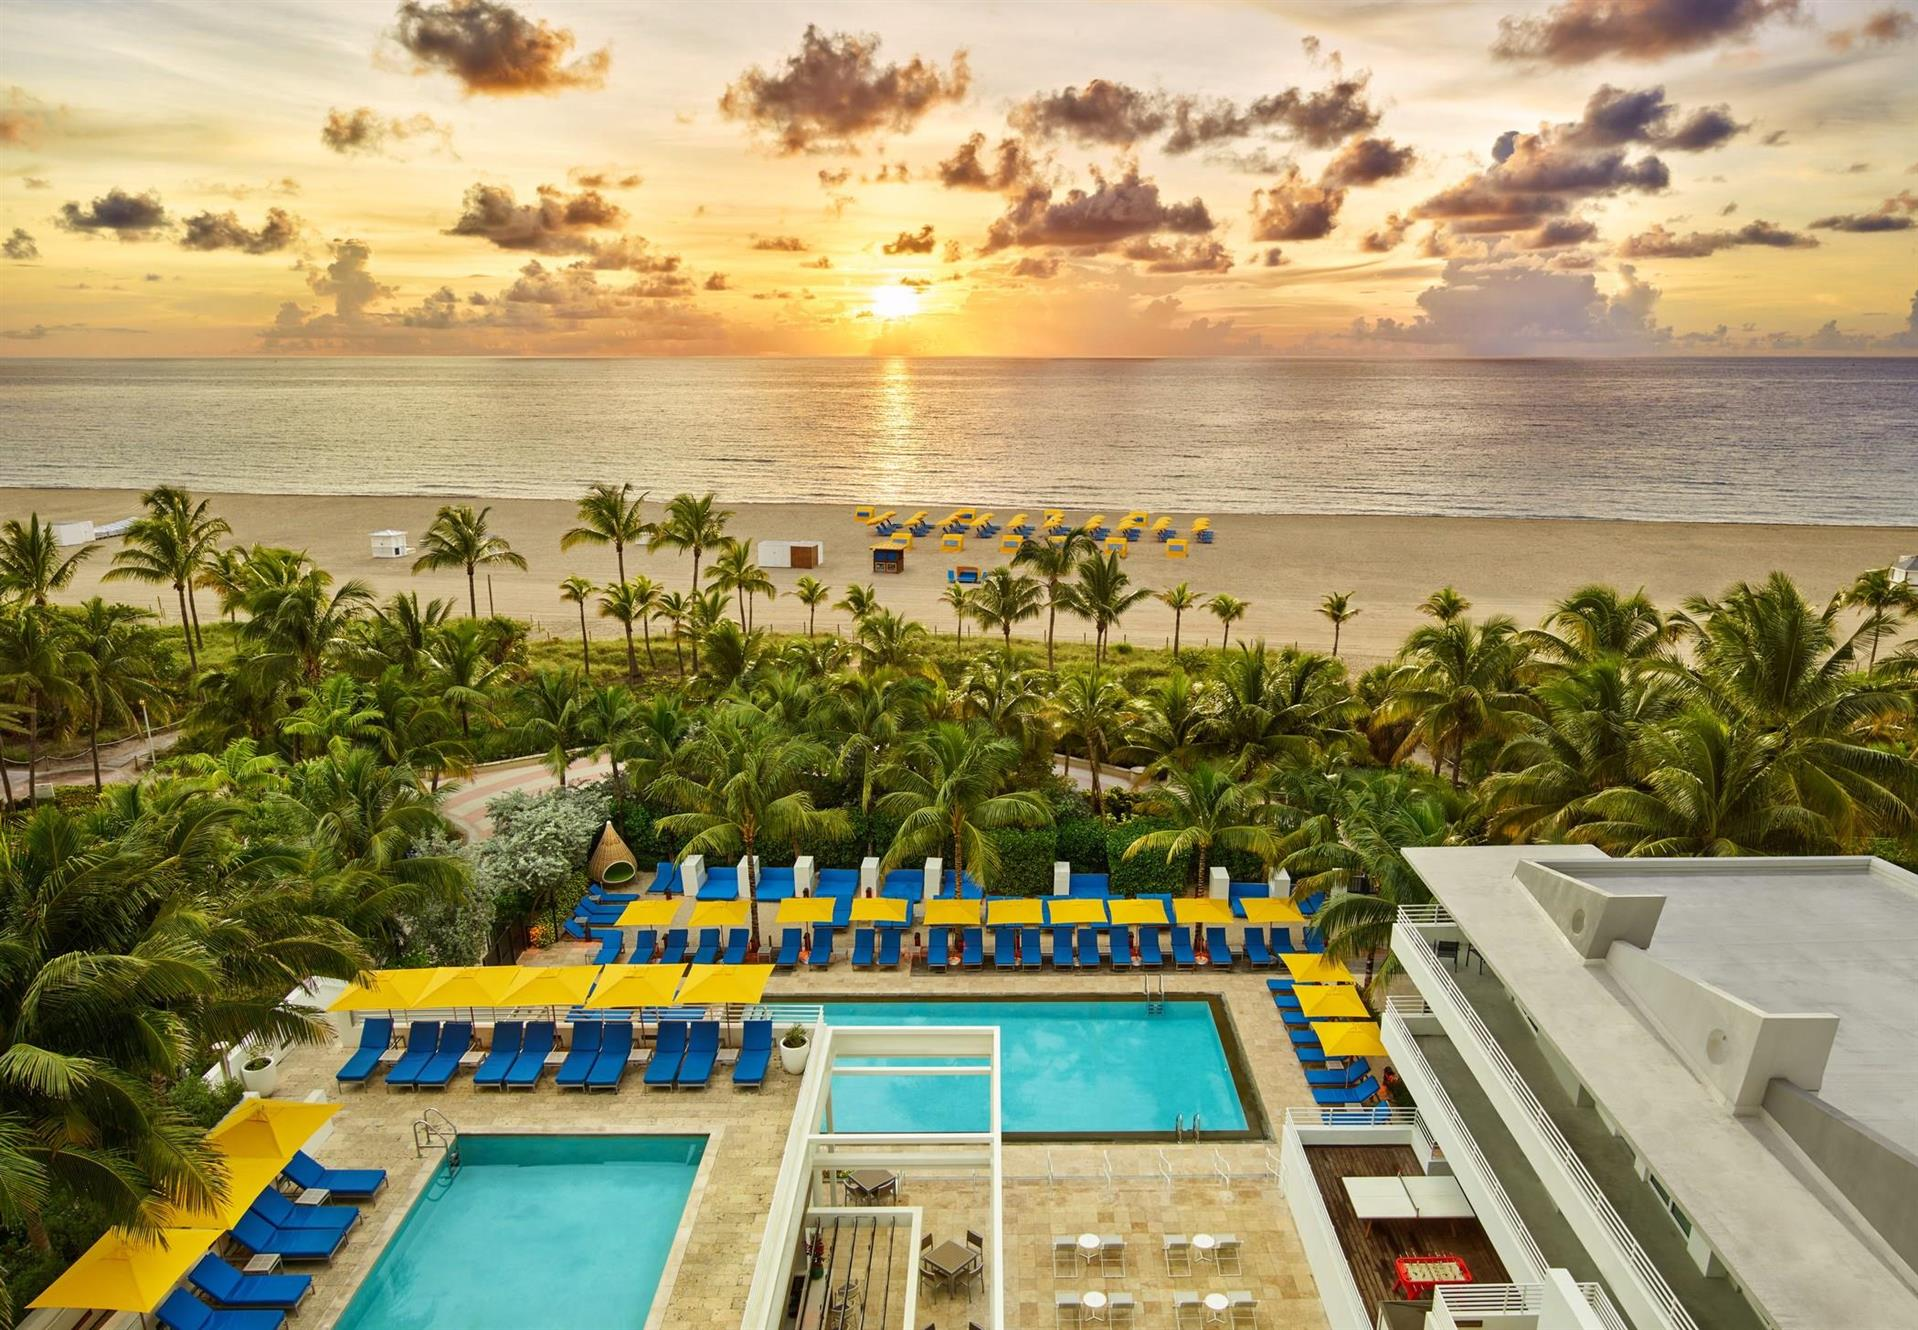 Meetings And Events At The Palms Hotel Spa Miami Beach Fl Us